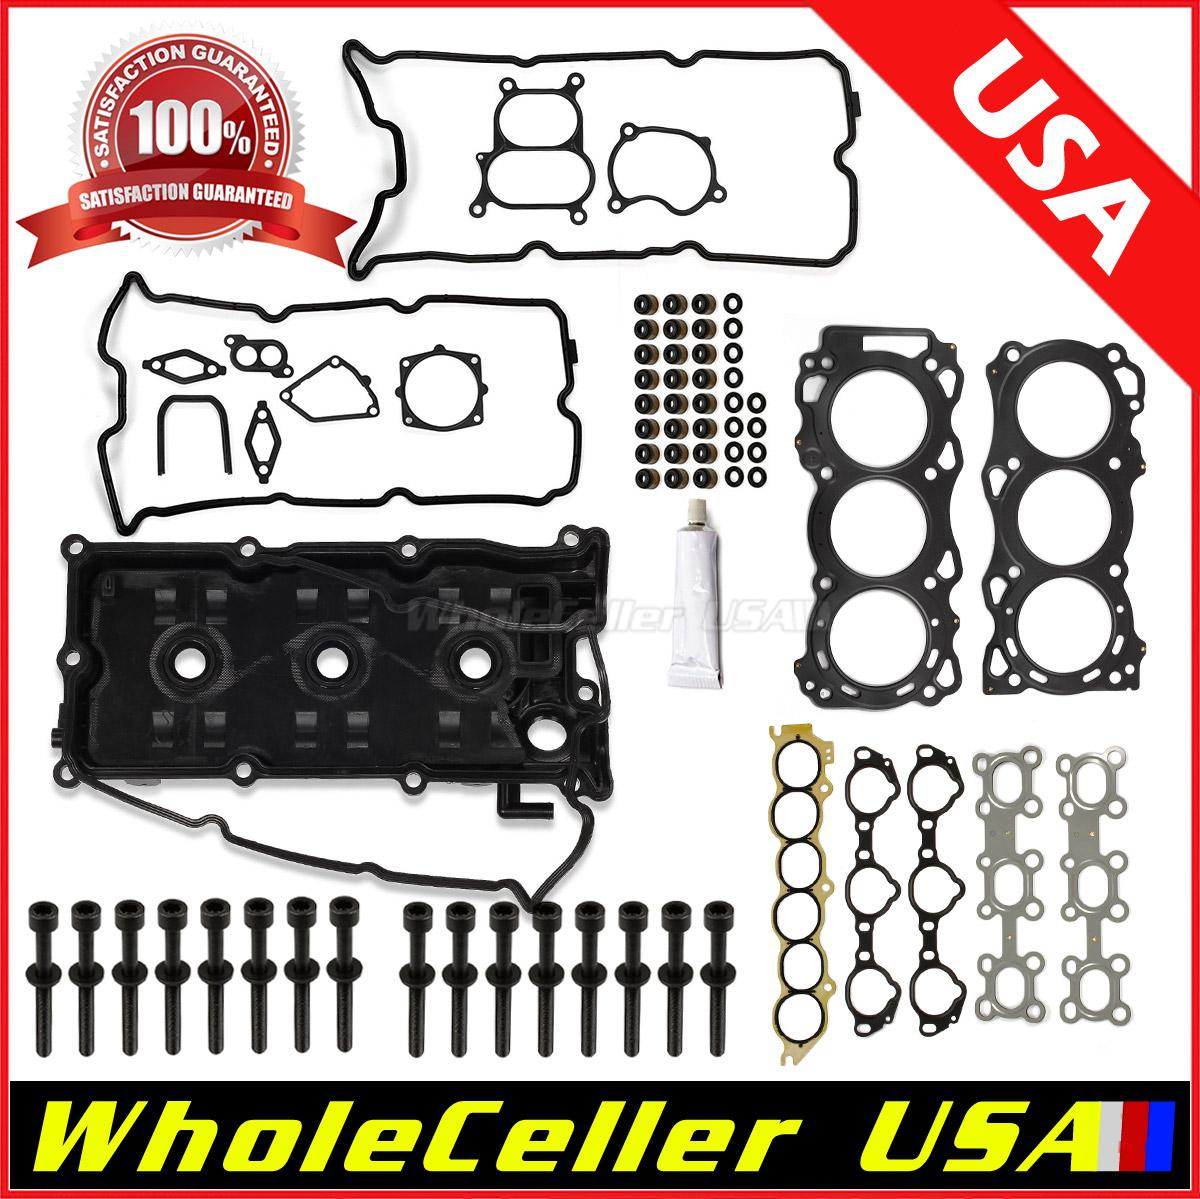 hight resolution of details about fits 02 09 nissan altima maxima cylinder head gasket bolts kit 3 5l vq35de